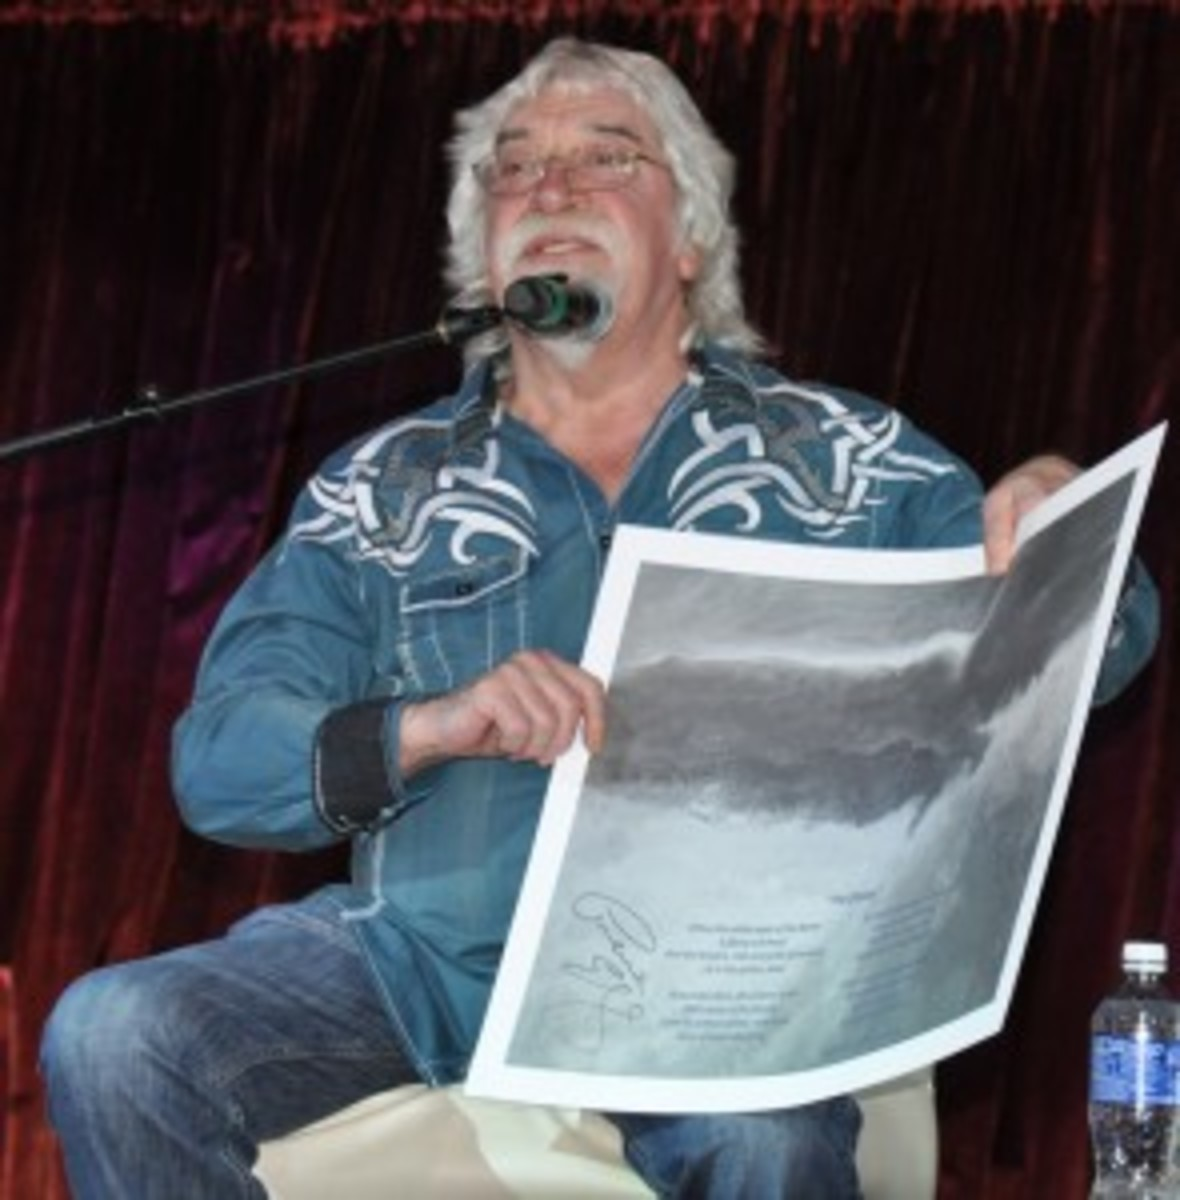 Graeme Edge during the Moody Blues storytelling session of the cruise.